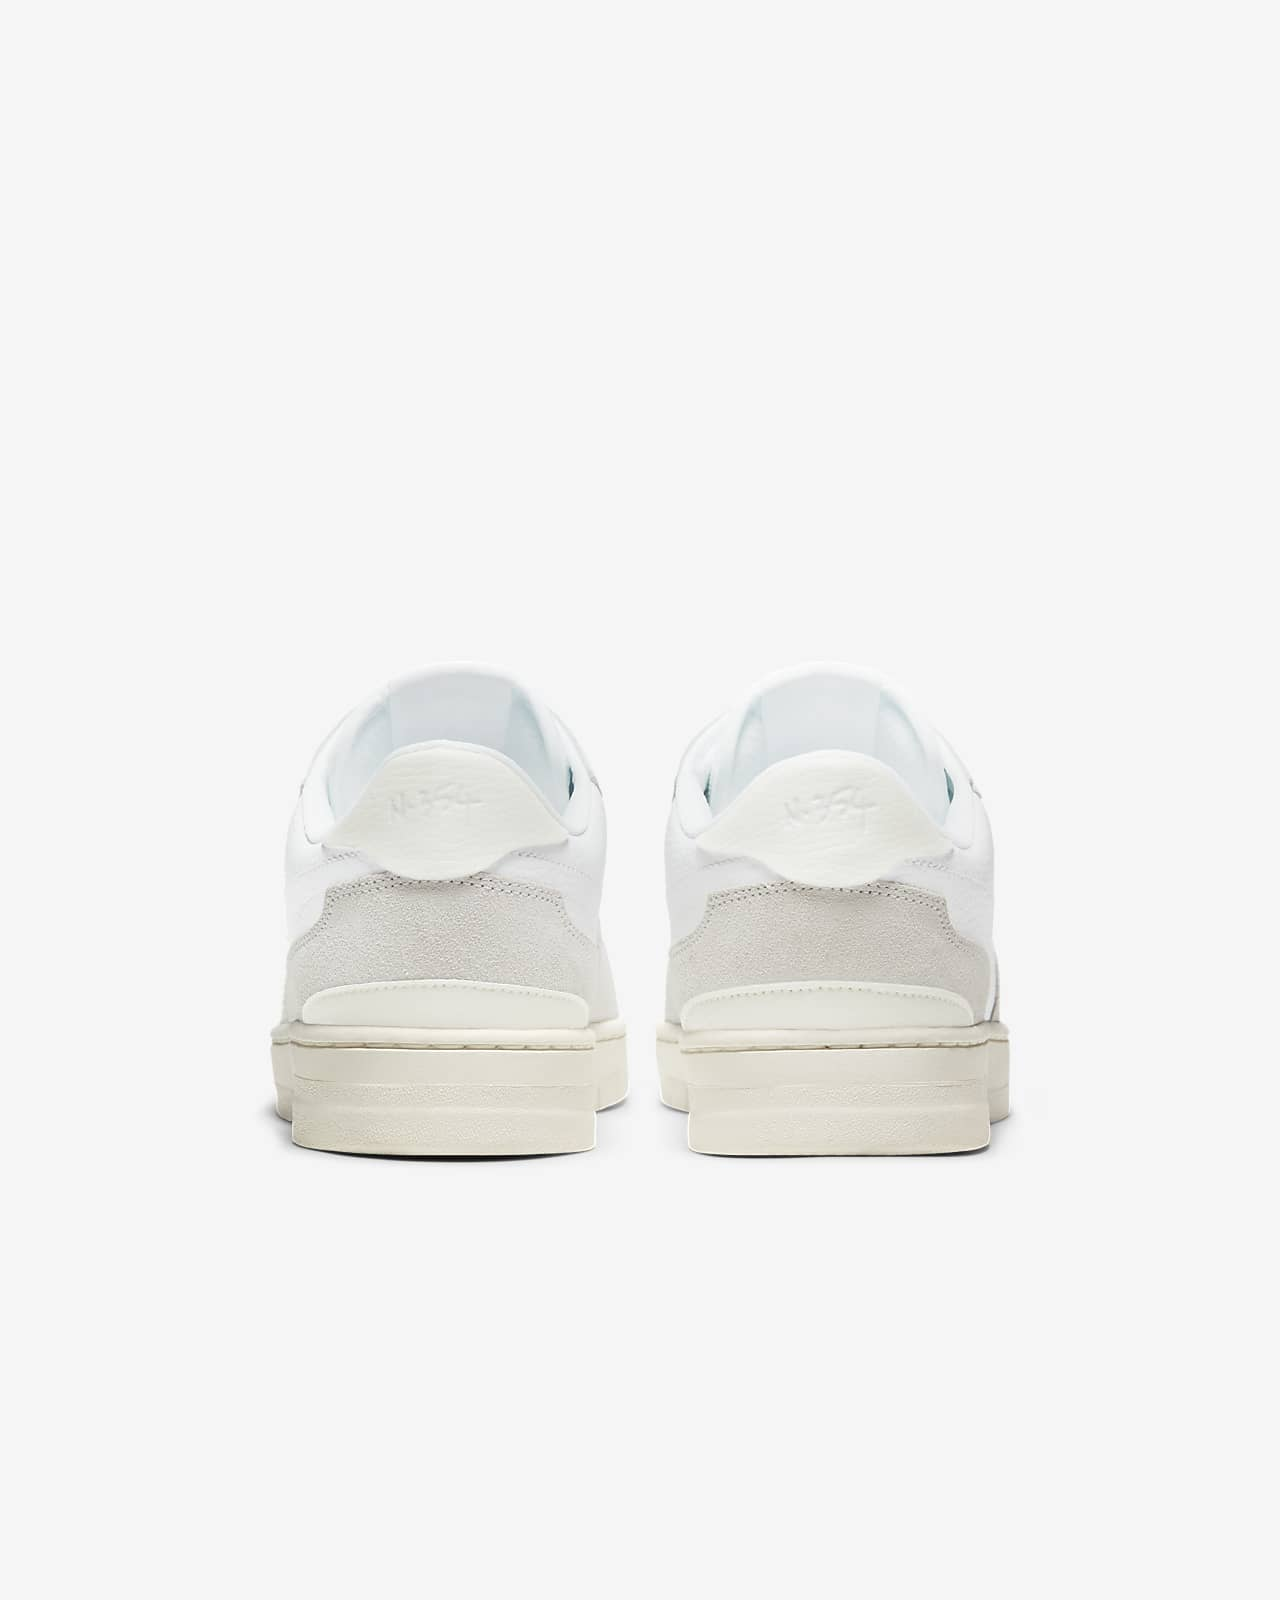 Chaussure Nike Squash Type pour Homme